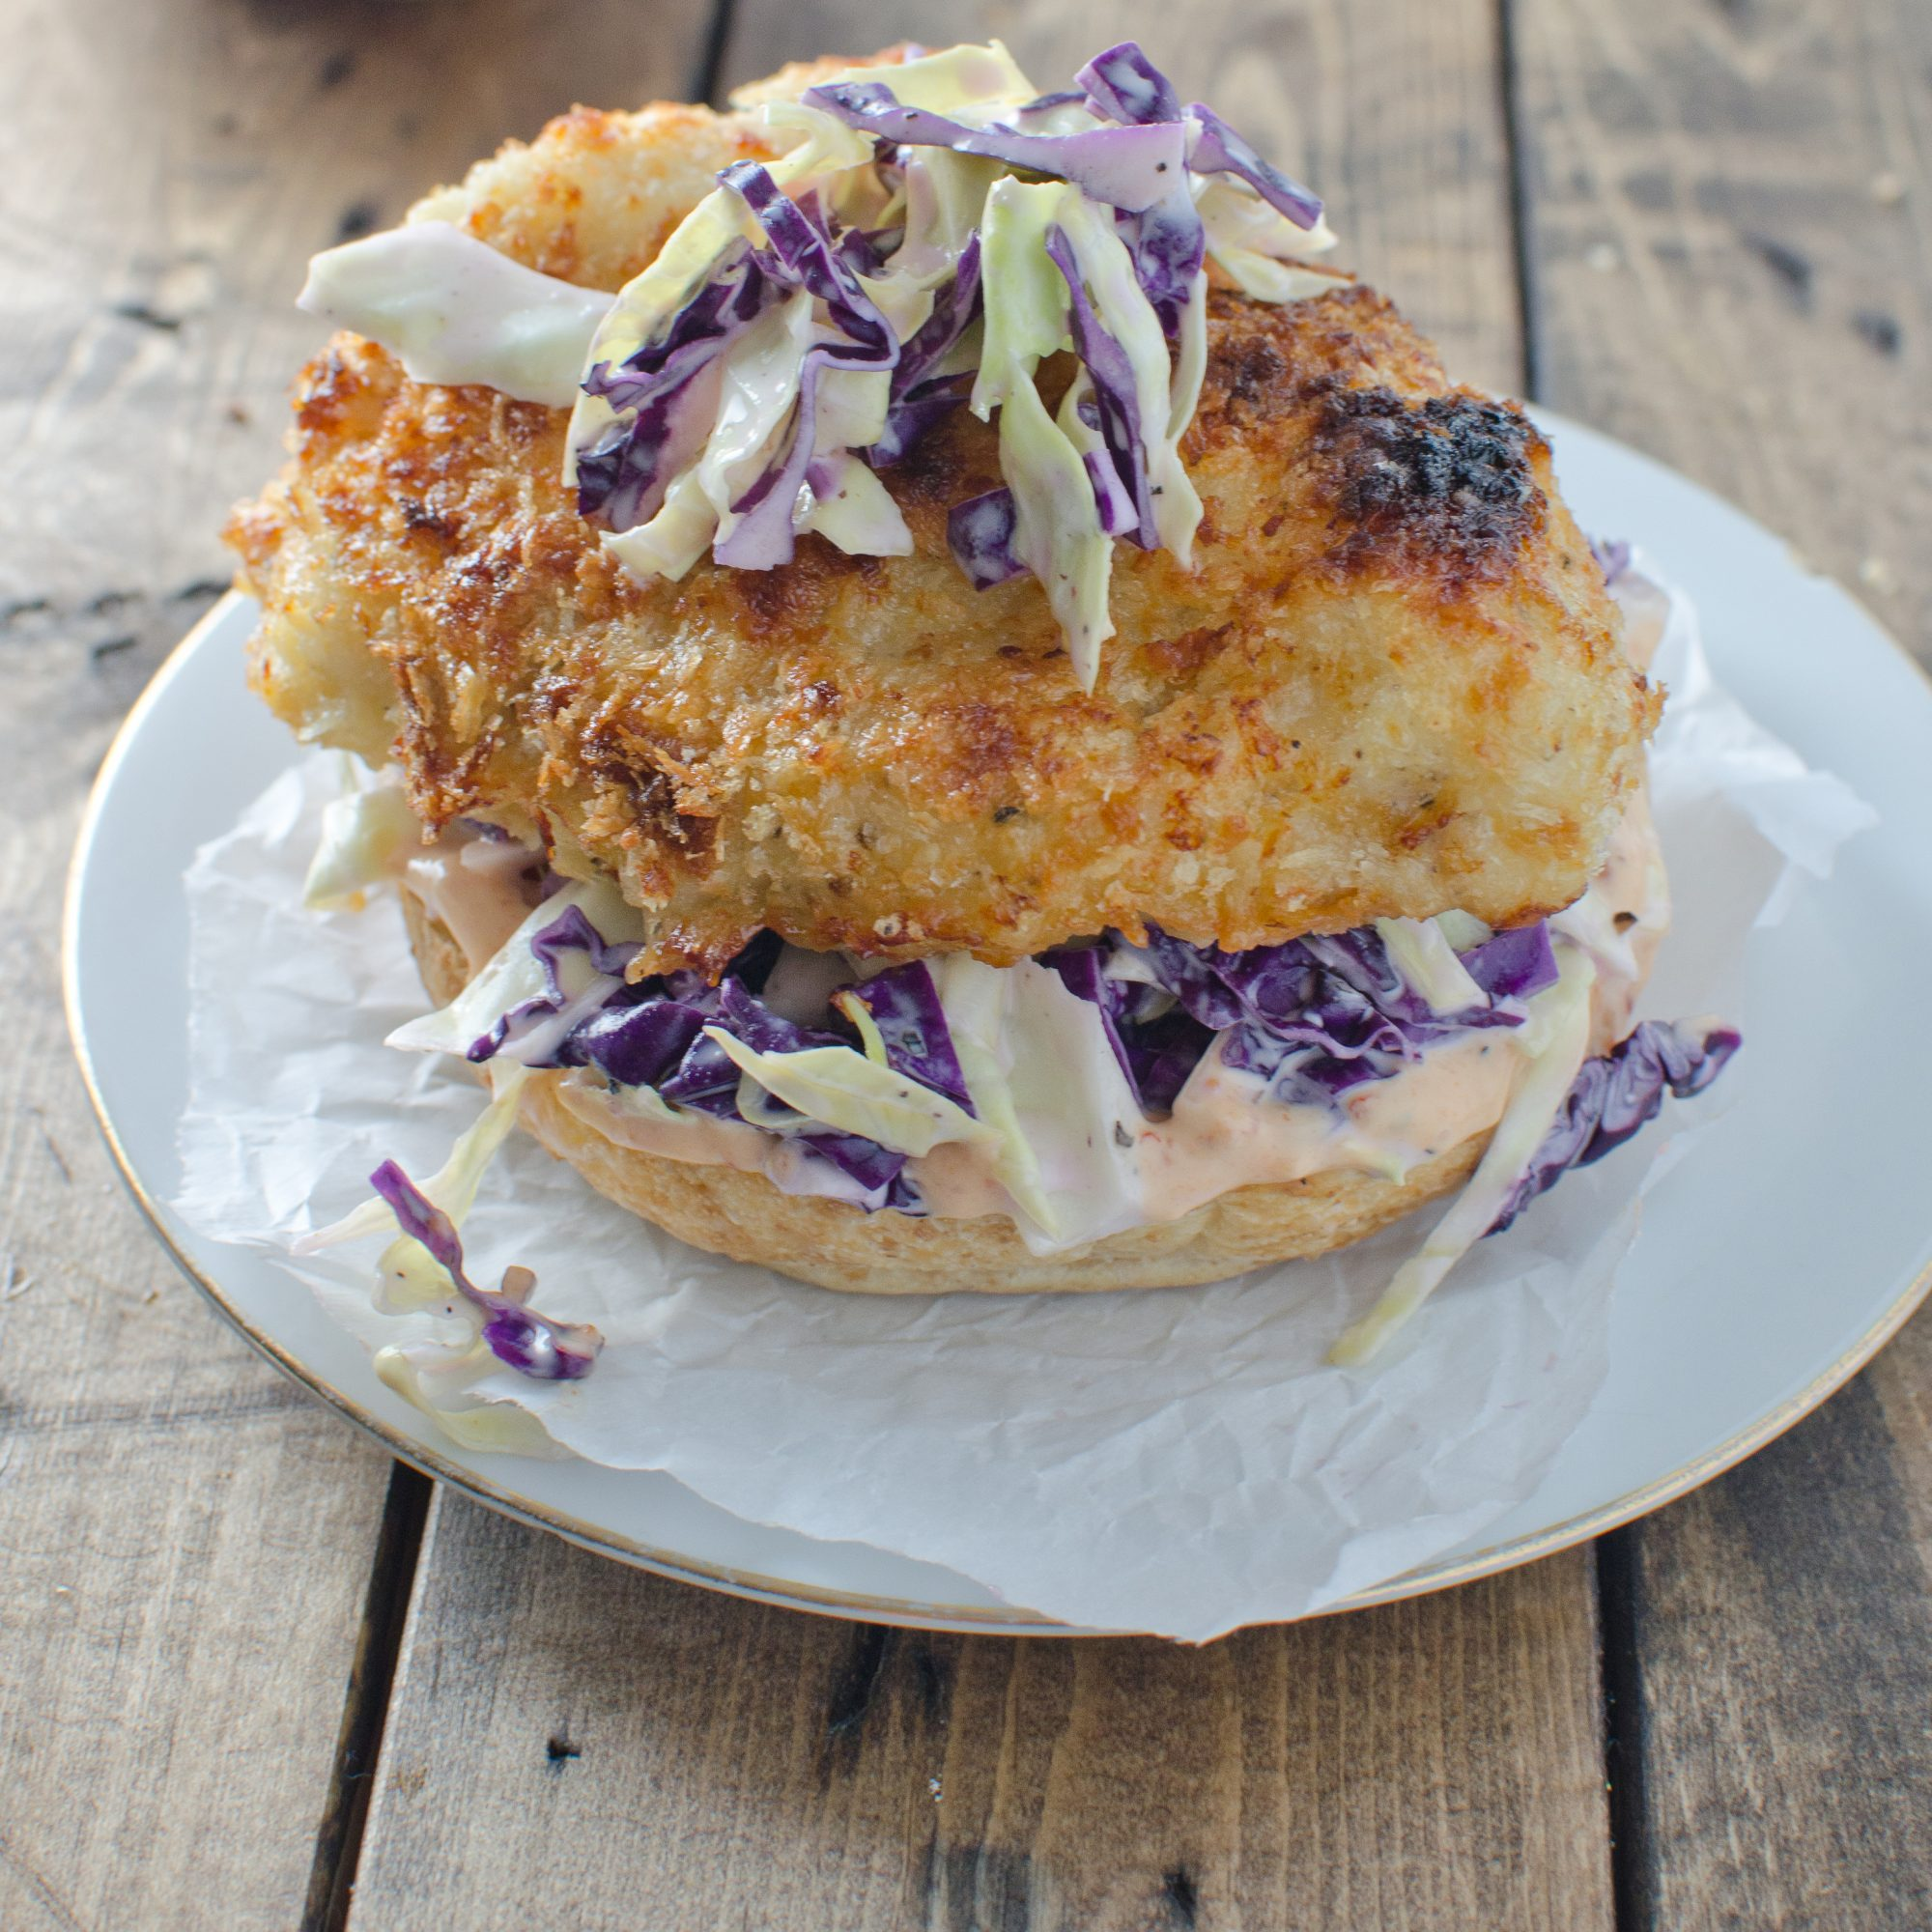 Crispy Chicken Burger With Coleslaw And Chipotle Mayo Recipe Kristen Stevens Food Wine